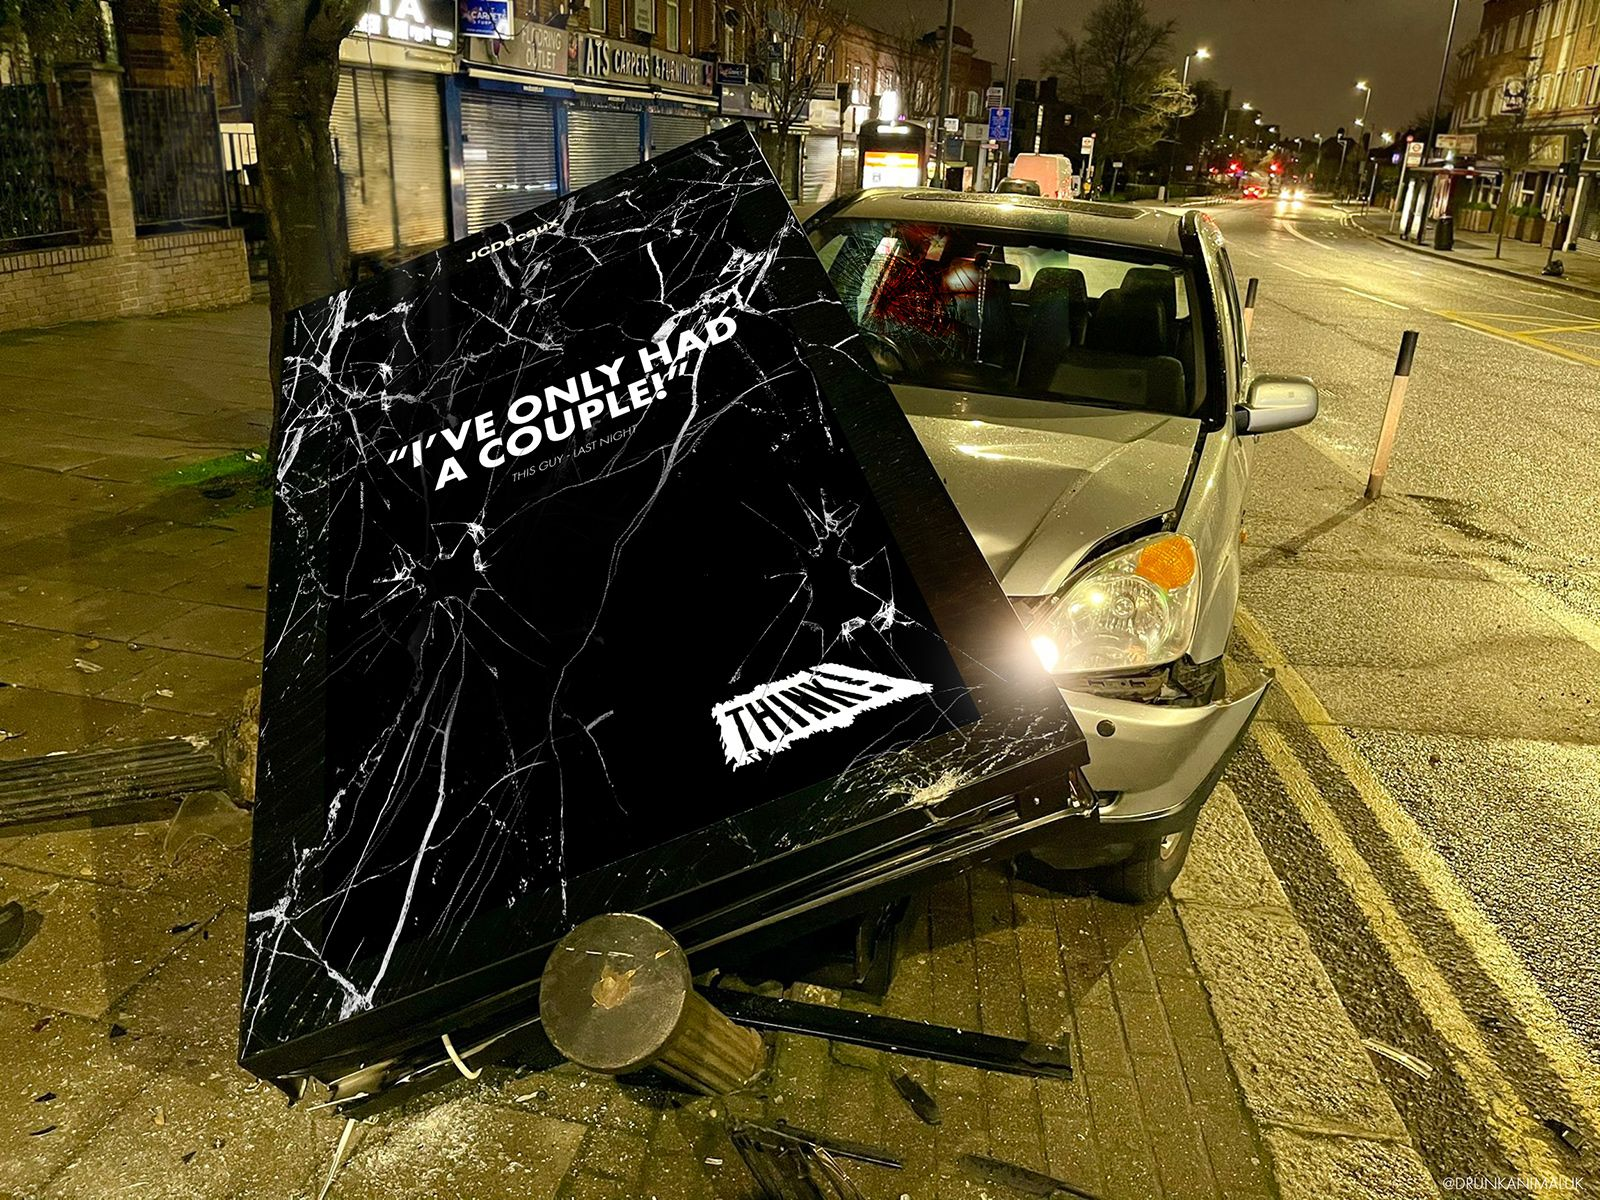 THINK road safety crashed advertising board